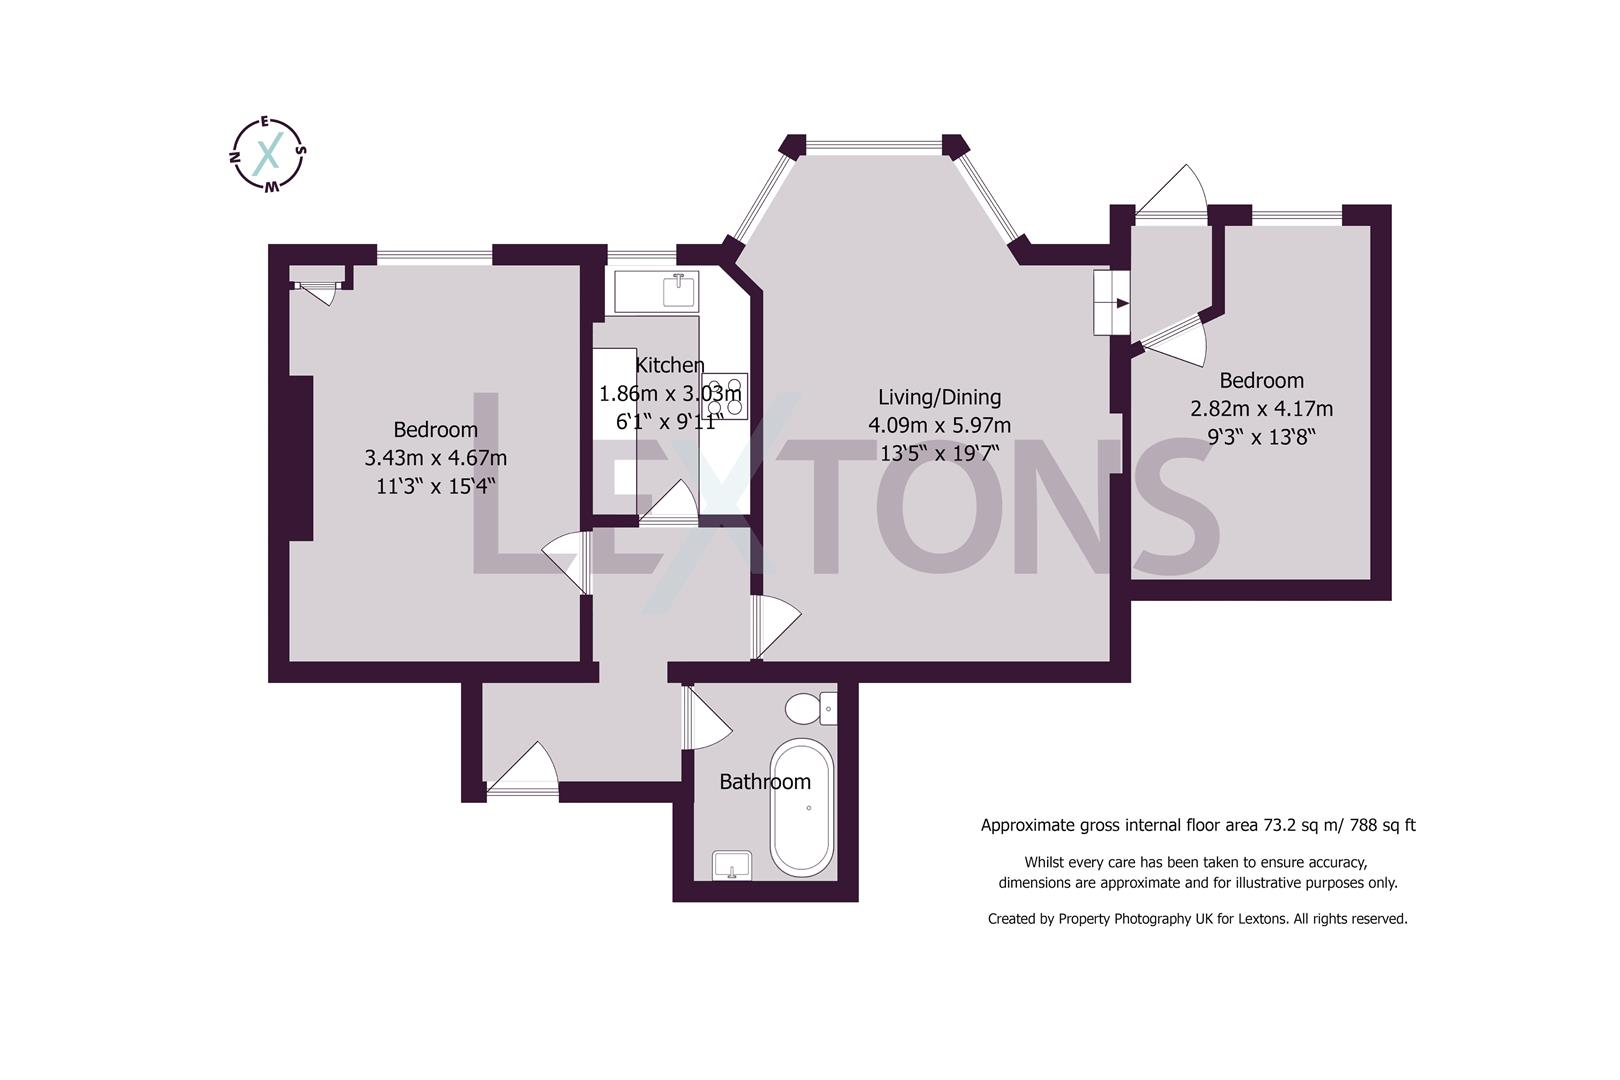 Floorplans For Albany Villas, Hove